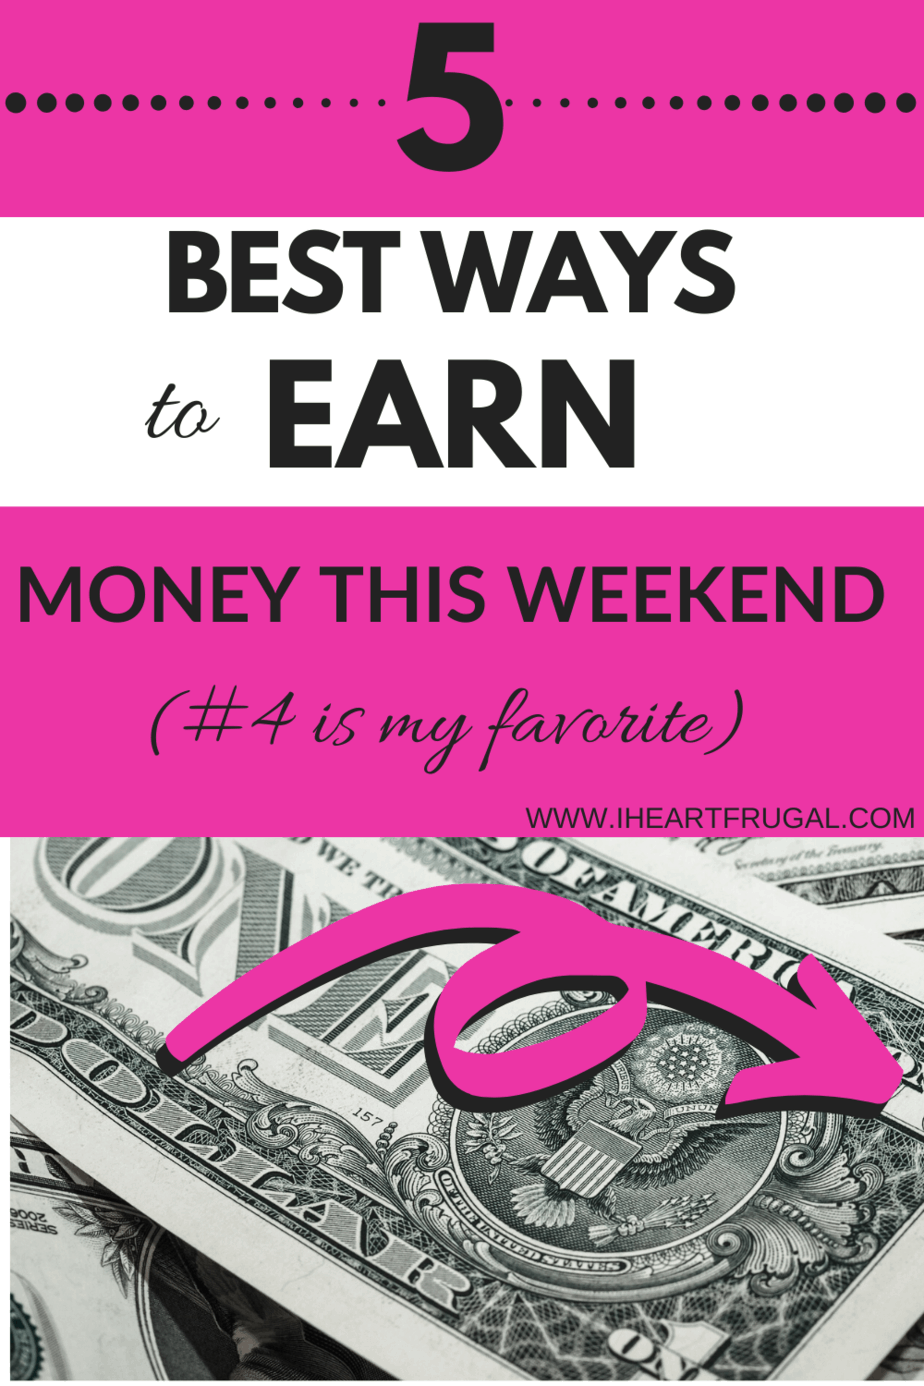 5 Best Ways to Earn Money From Home This Weekend. Learn how to make money from home with these 5 easy ways to earn money from home #makemoney #workfromhome #sidehustle